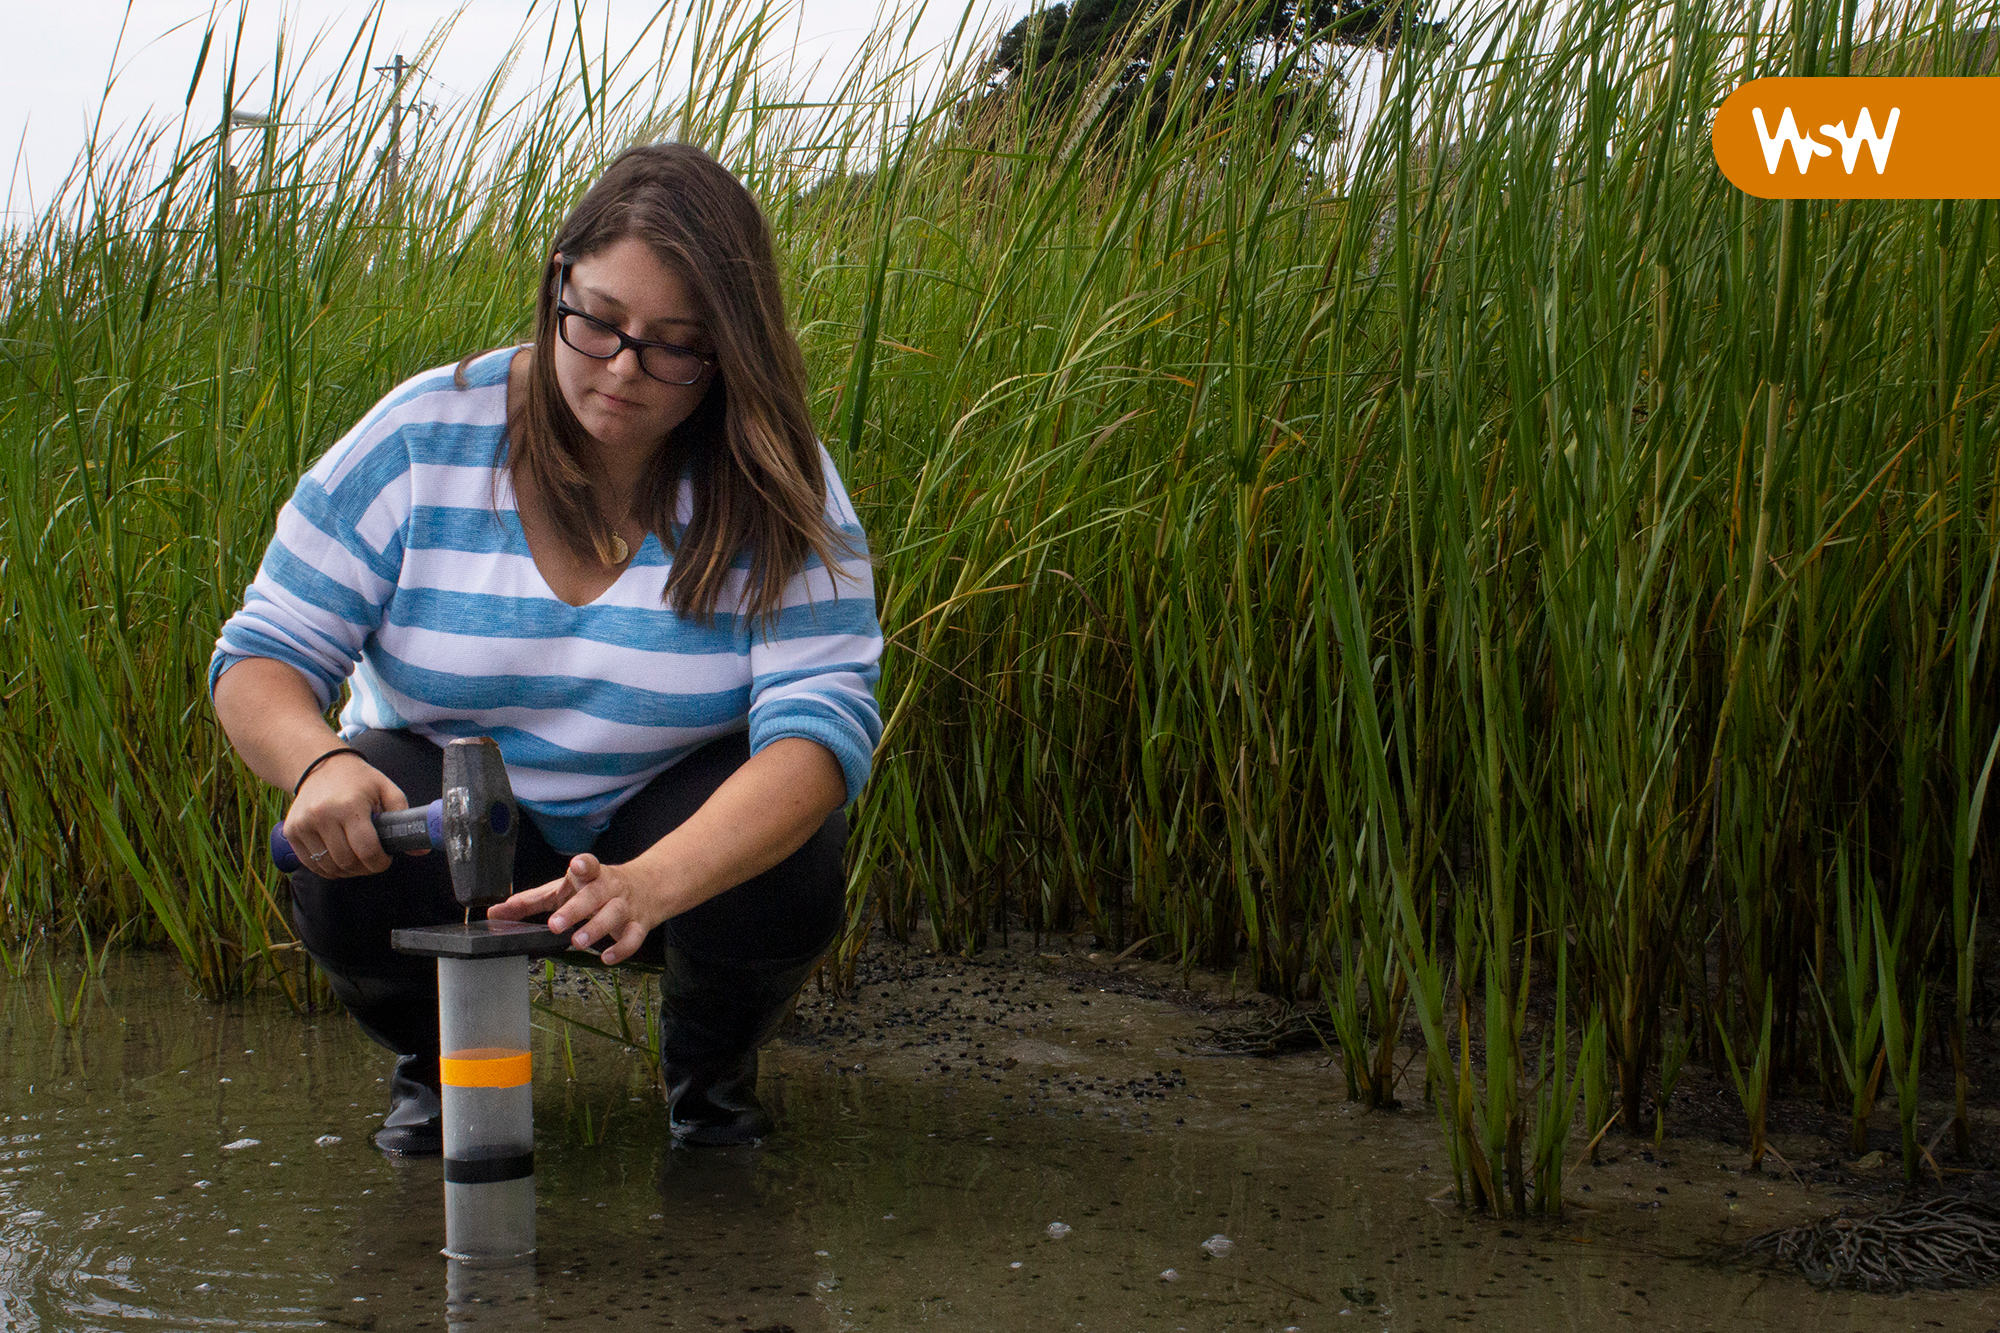 Image of Mollie Yacano wading in a marsh with a hammer in hand, setting up research equipment.